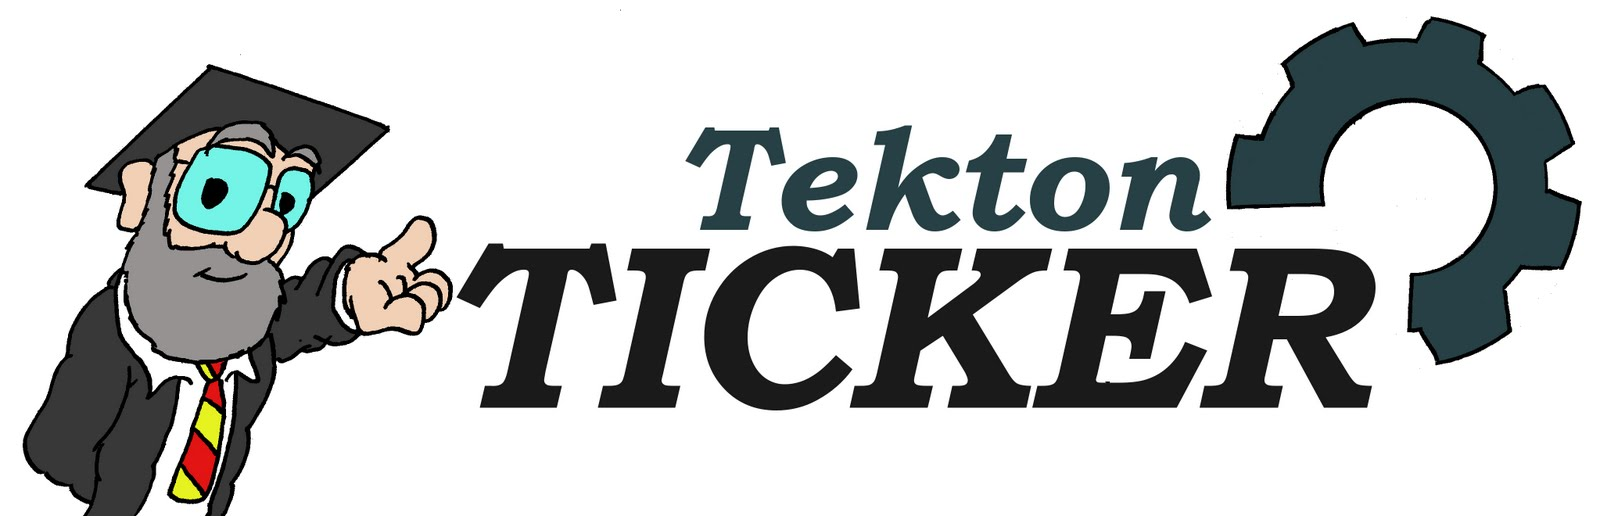 Tekton Ticker